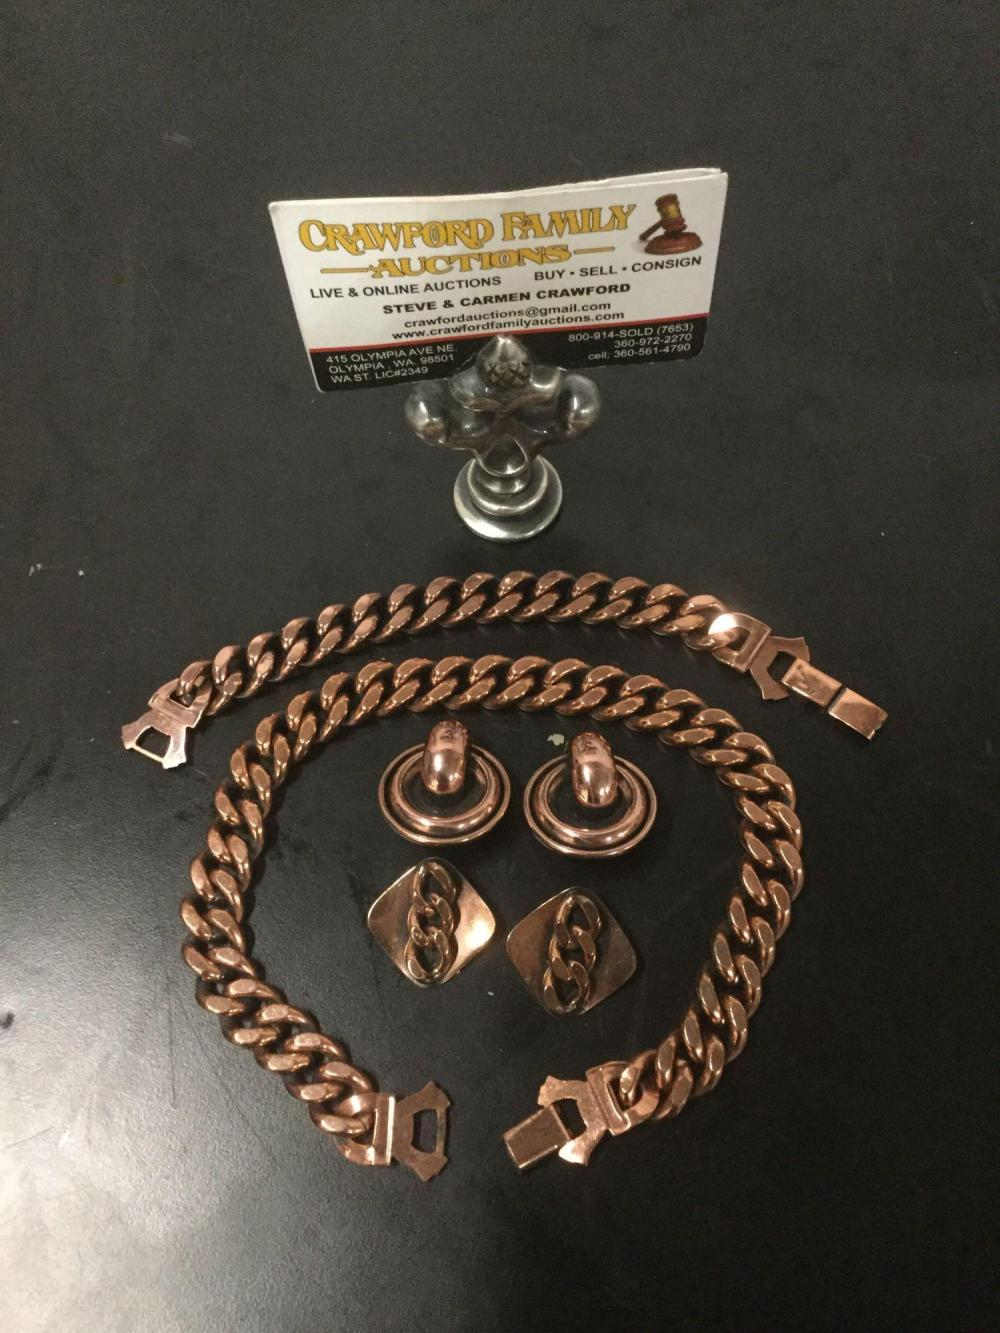 Lot 177: Vintage Renoir copper chain jewelry set - 13 inch necklace, bracelet, and 2 pair of earrings